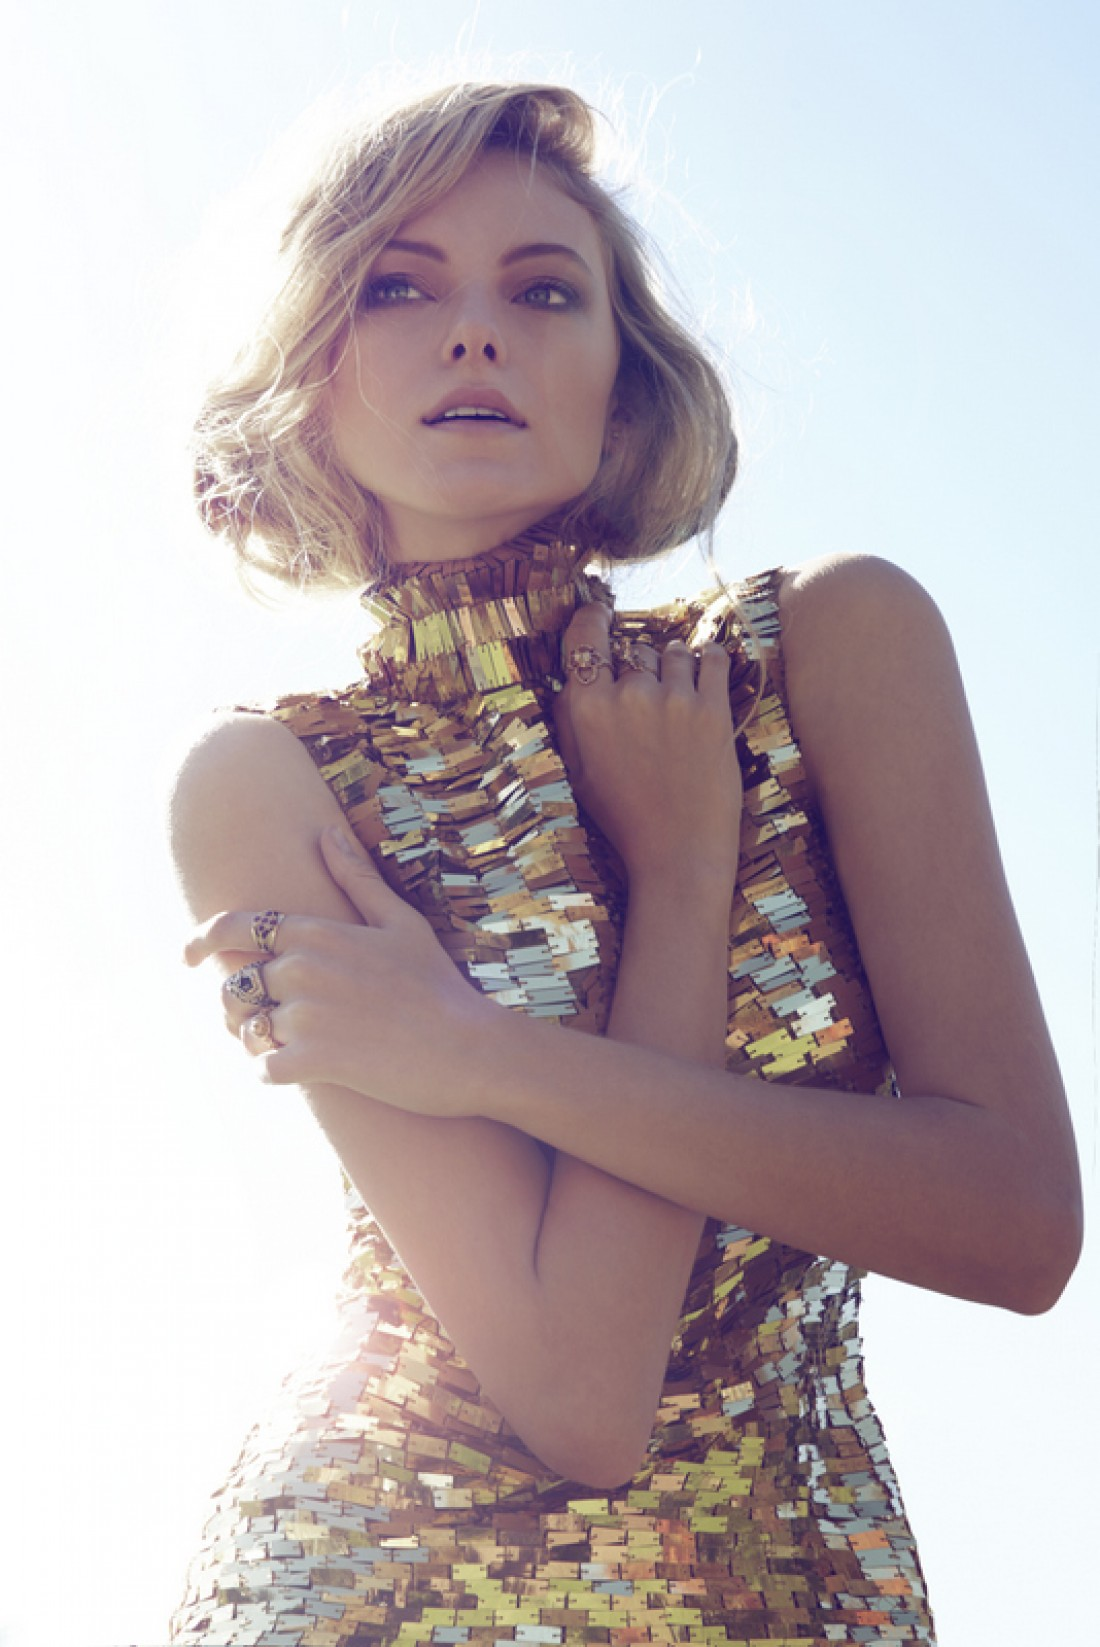 Zoe shot by Julie Huang, styling by Juvena Worsfold